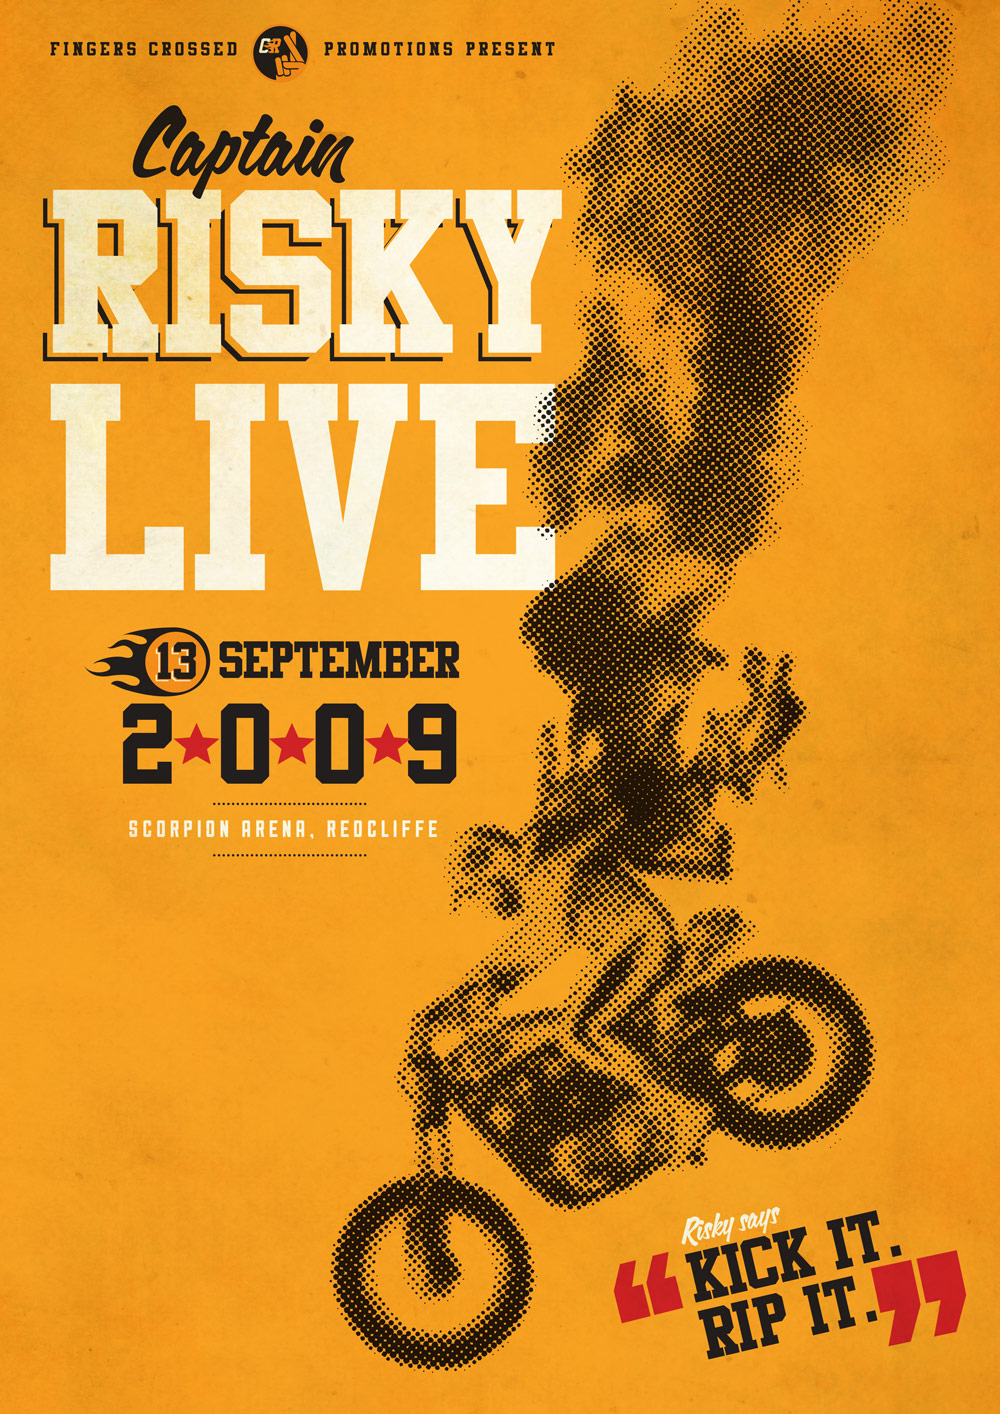 Captain Risky's September 2009 Tour